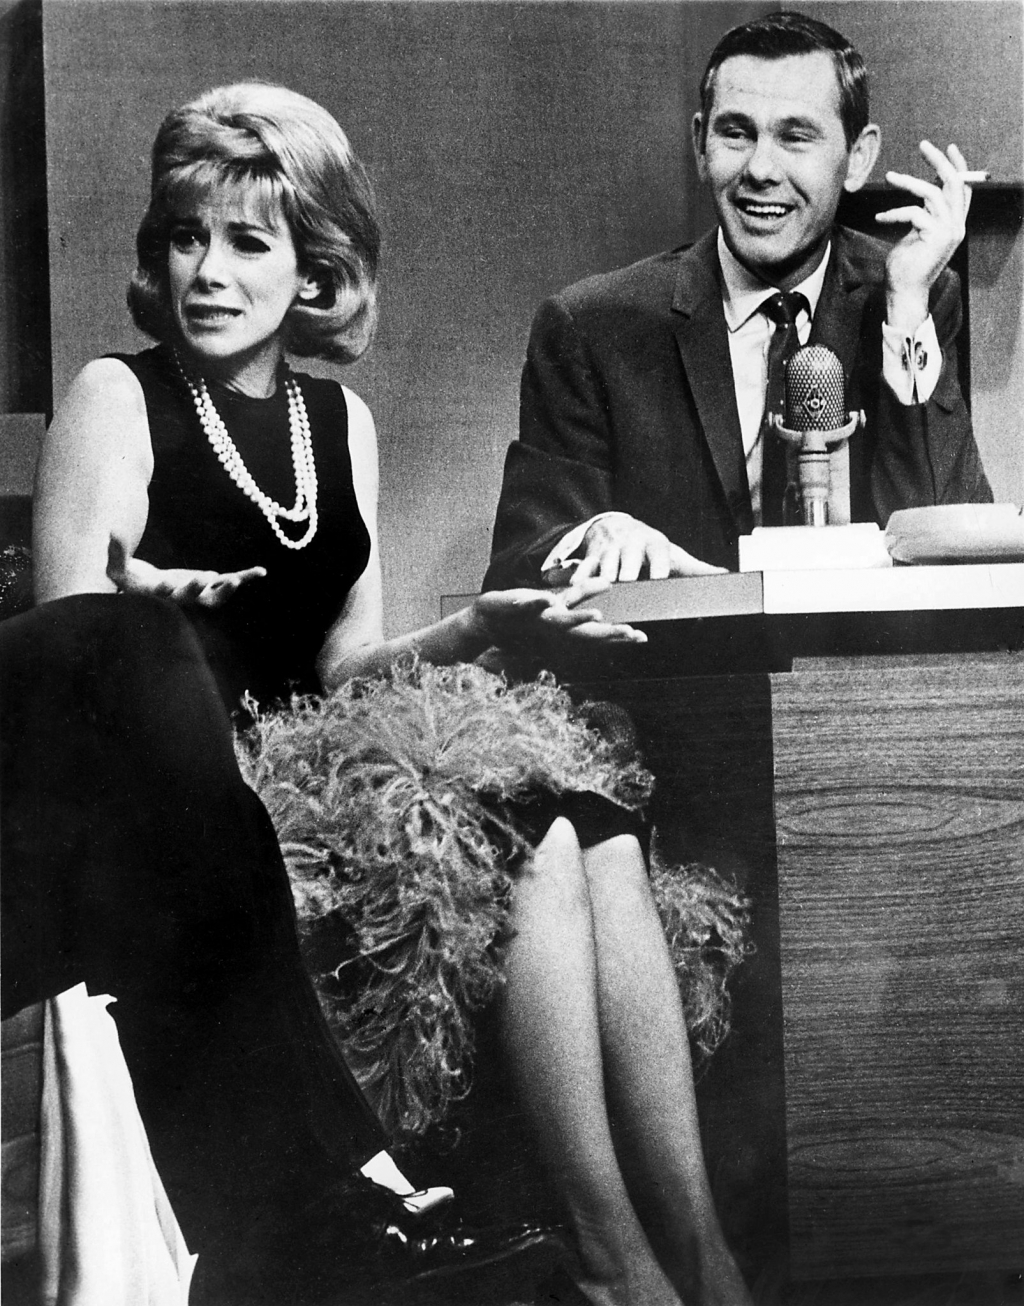 1965 - Joan Rivers with Johnny Carson on 'The Tonight Show' (Joel Elkins-Pix Inc.)